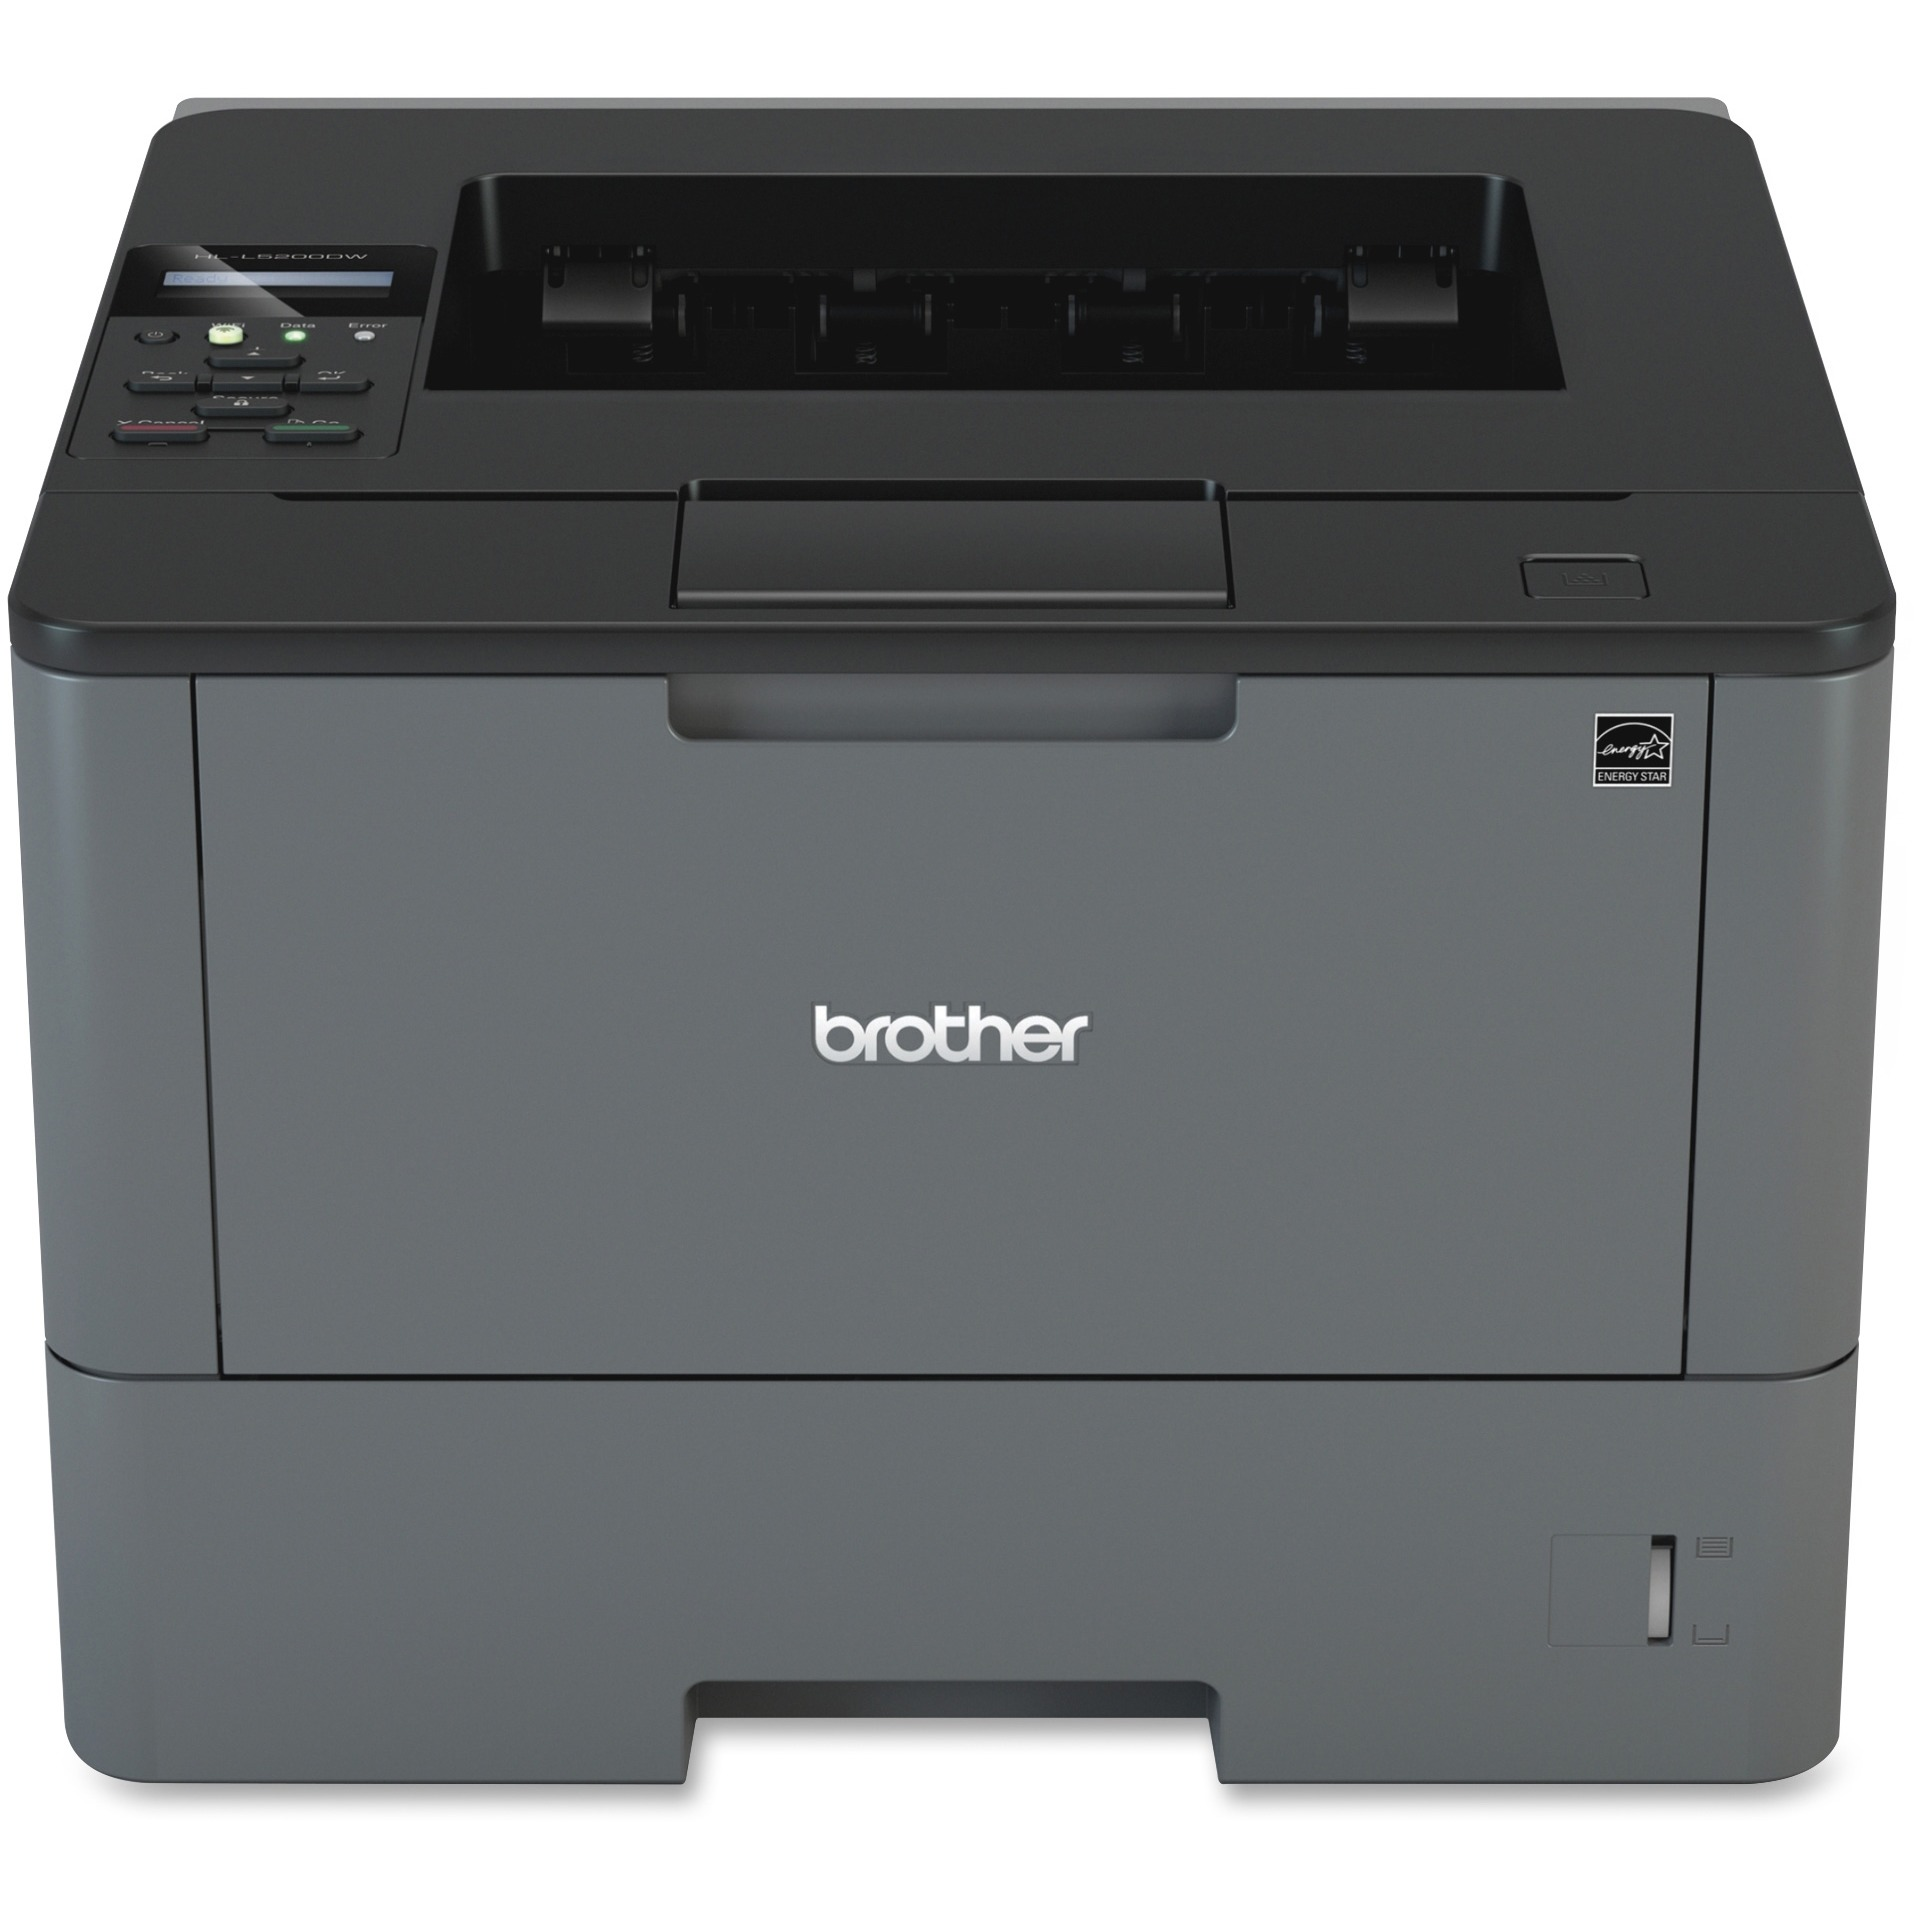 Brother HL-L5200DW Business Laser Printer with Wireless Networking and Duplex Printing by Brother